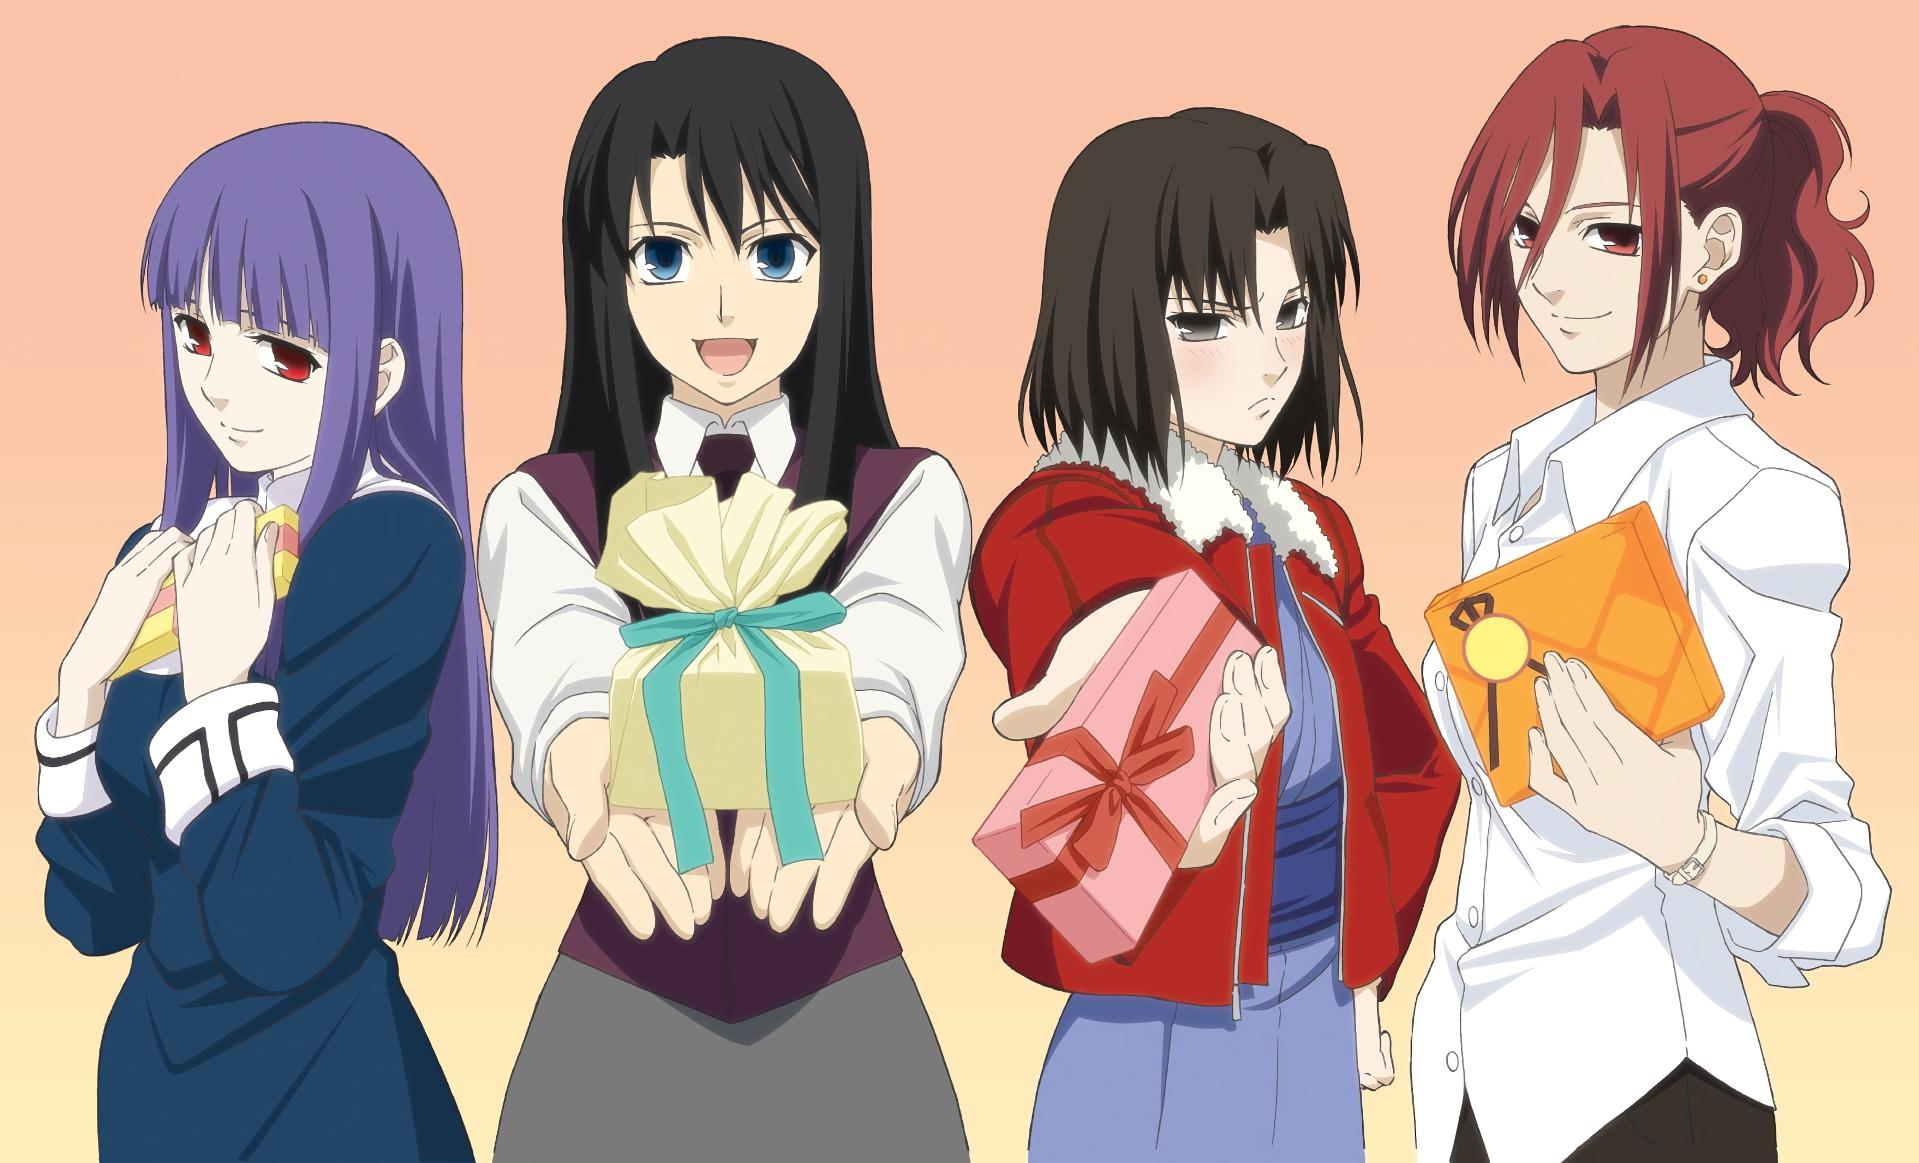 Wallpapers : Kara no Kyoukai, anime girls, Kokutou Azaka, Ryougi